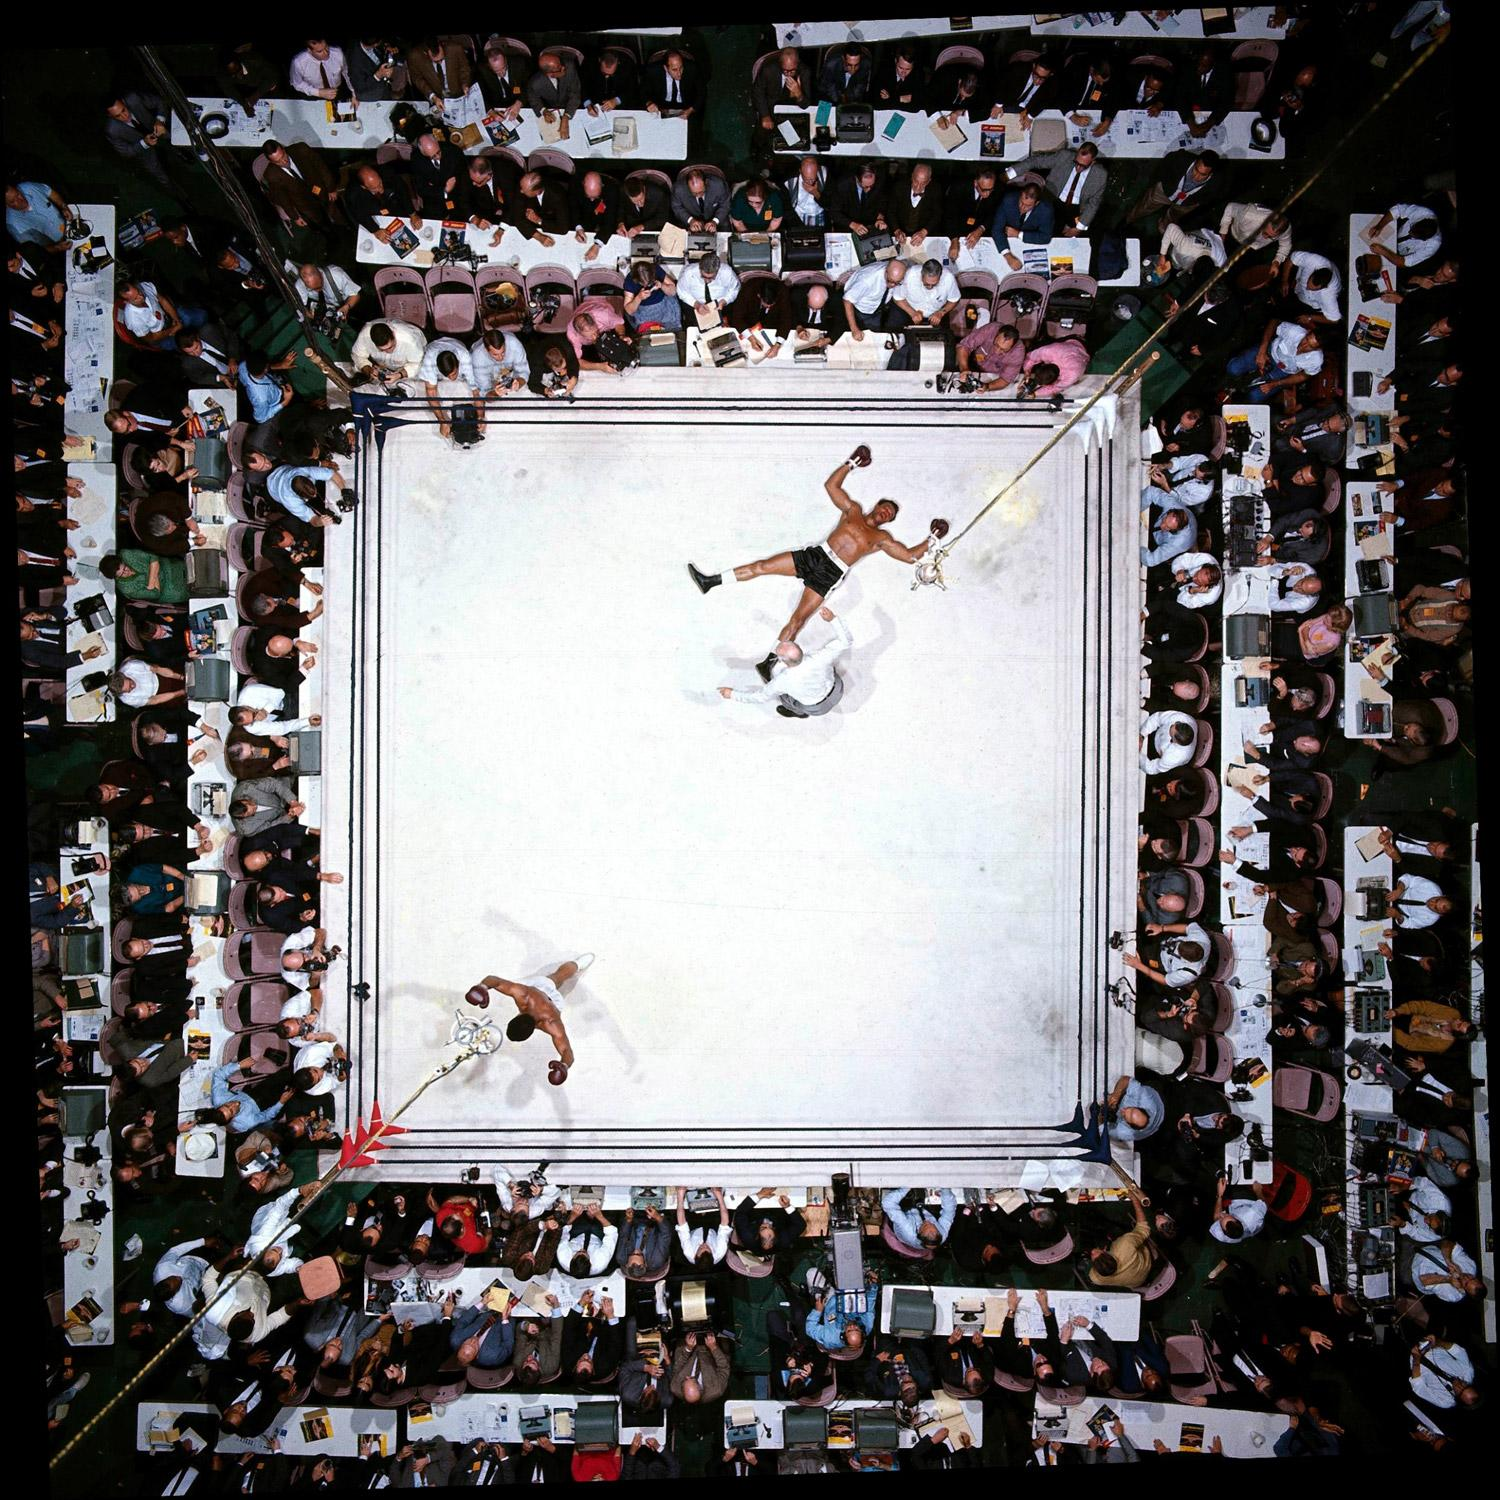 Muhammad Ali: Still The Greatest as photographed by Neil Leifer